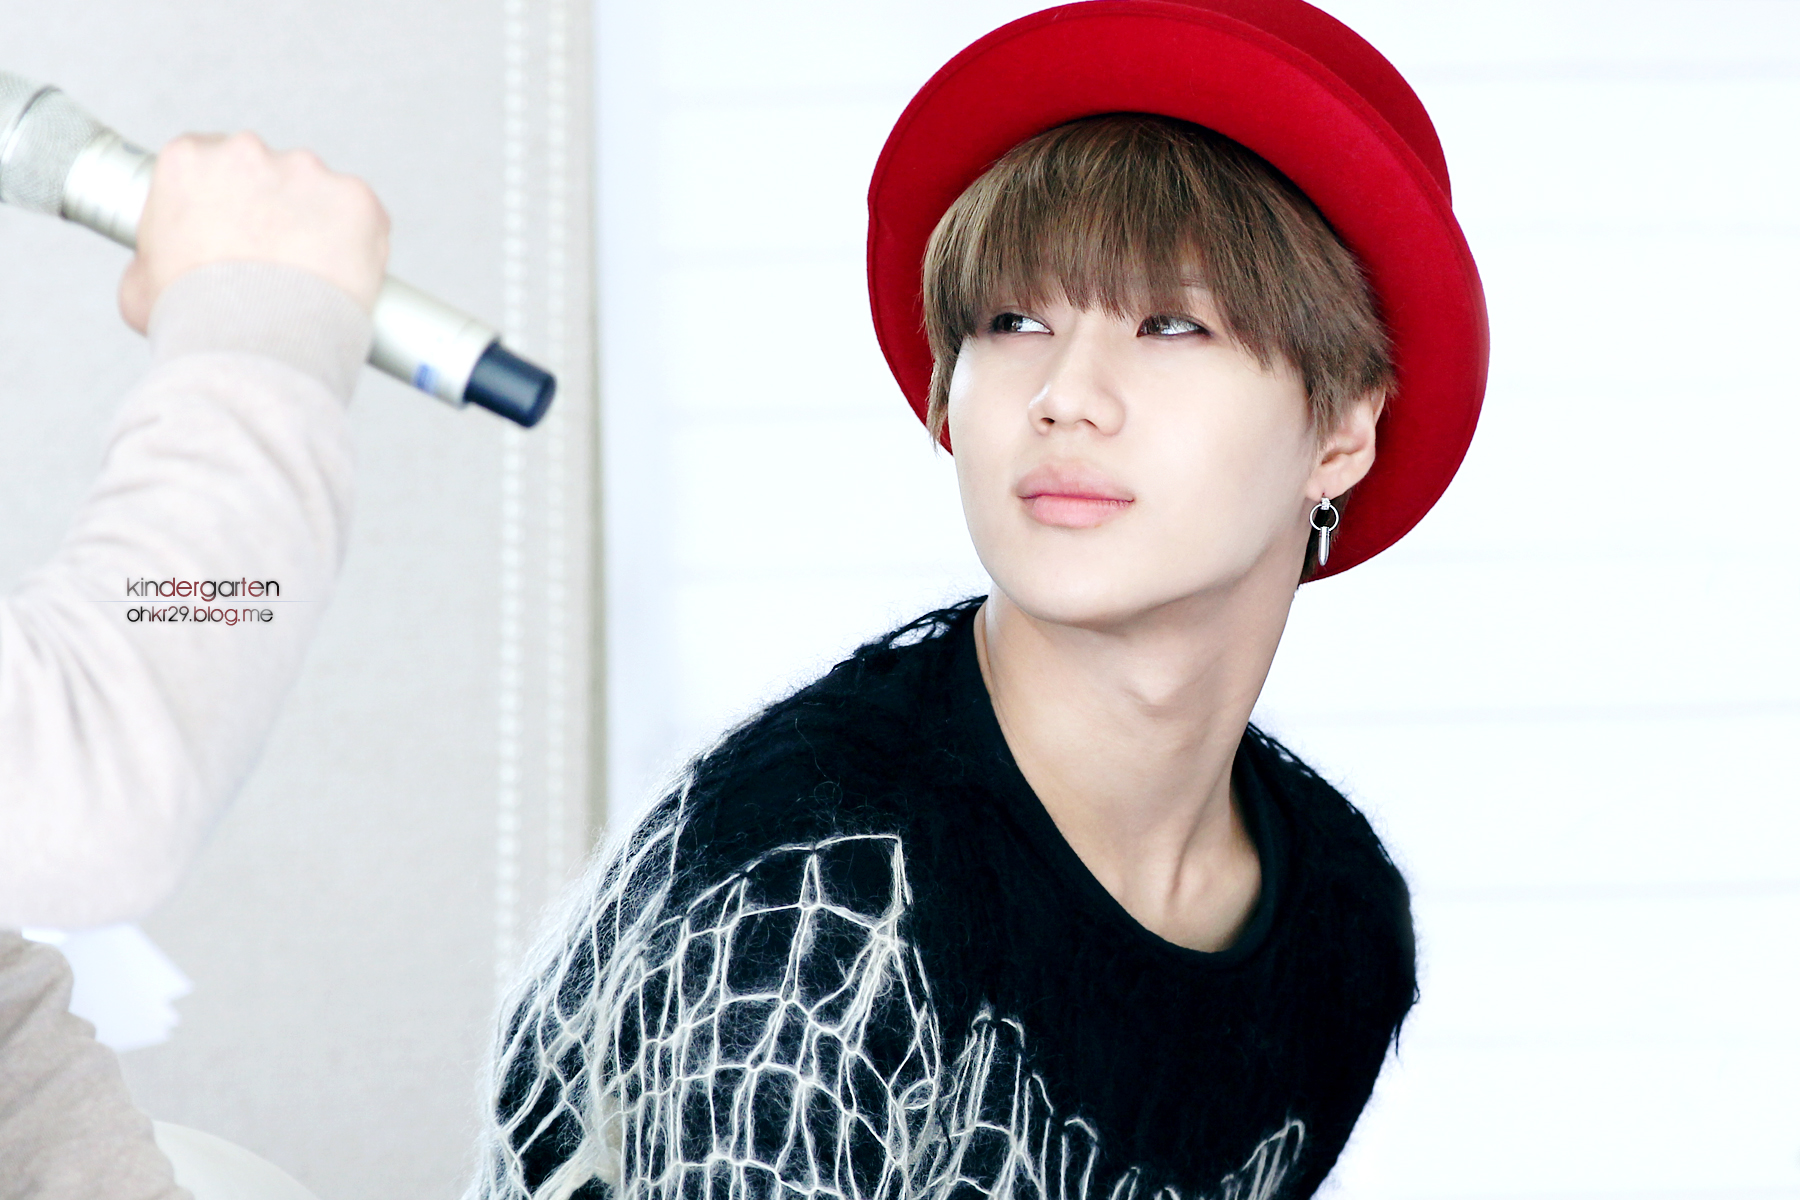 lee taemin images taemin hd wallpaper and background photos  35145126